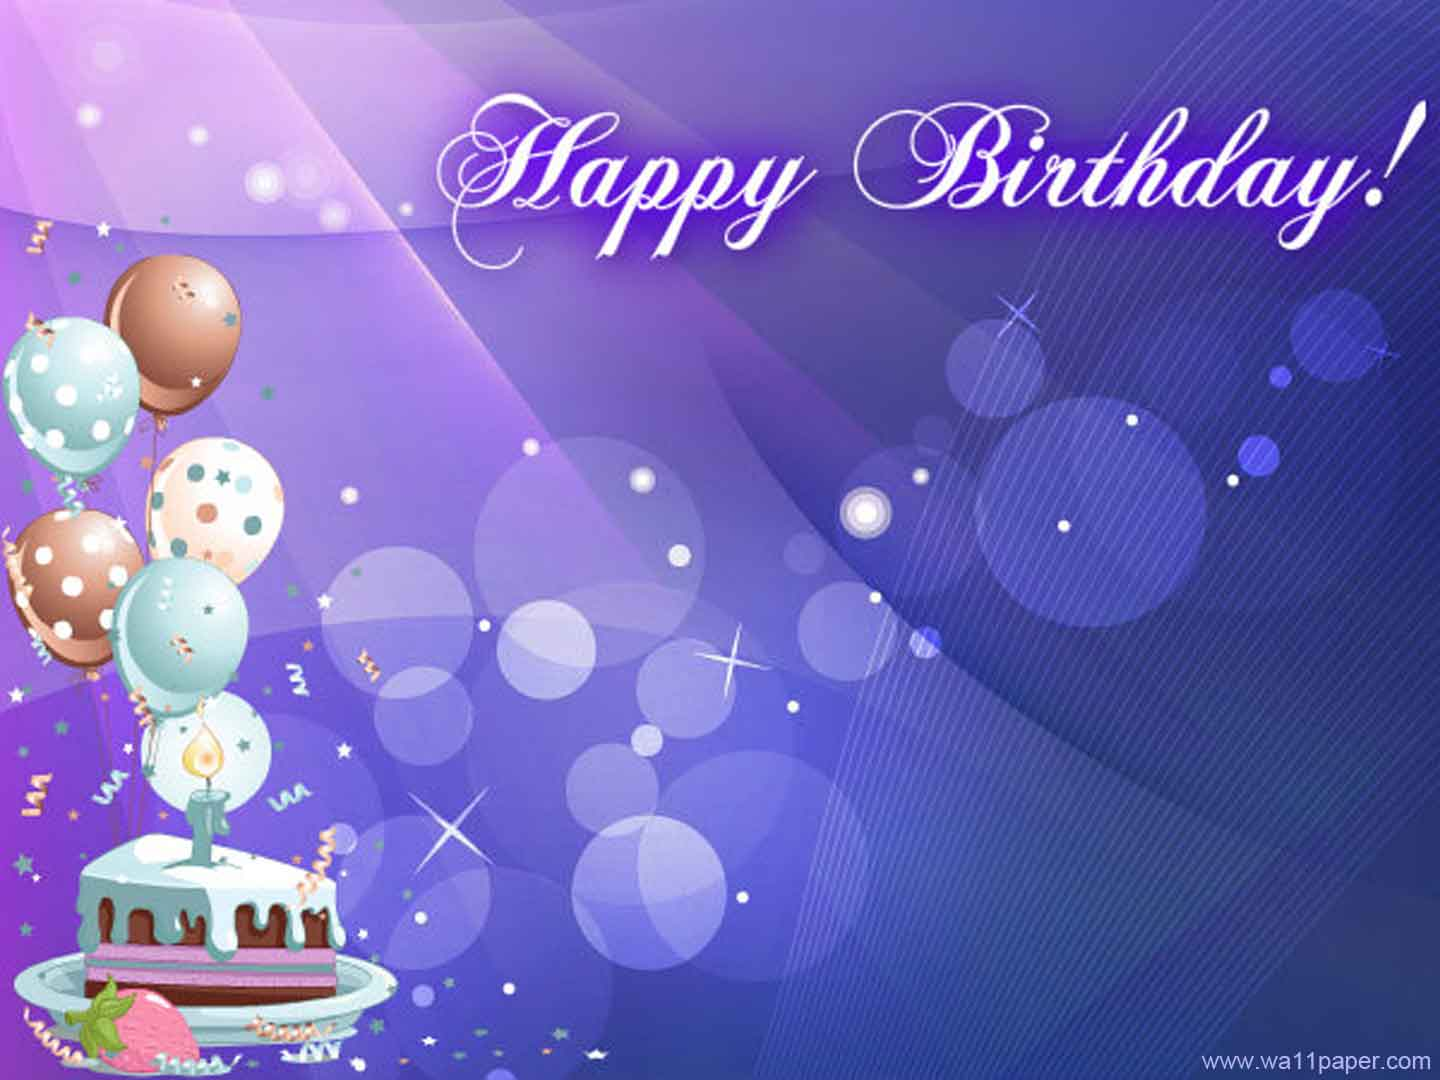 Birthday Backgrounds 1440x1080